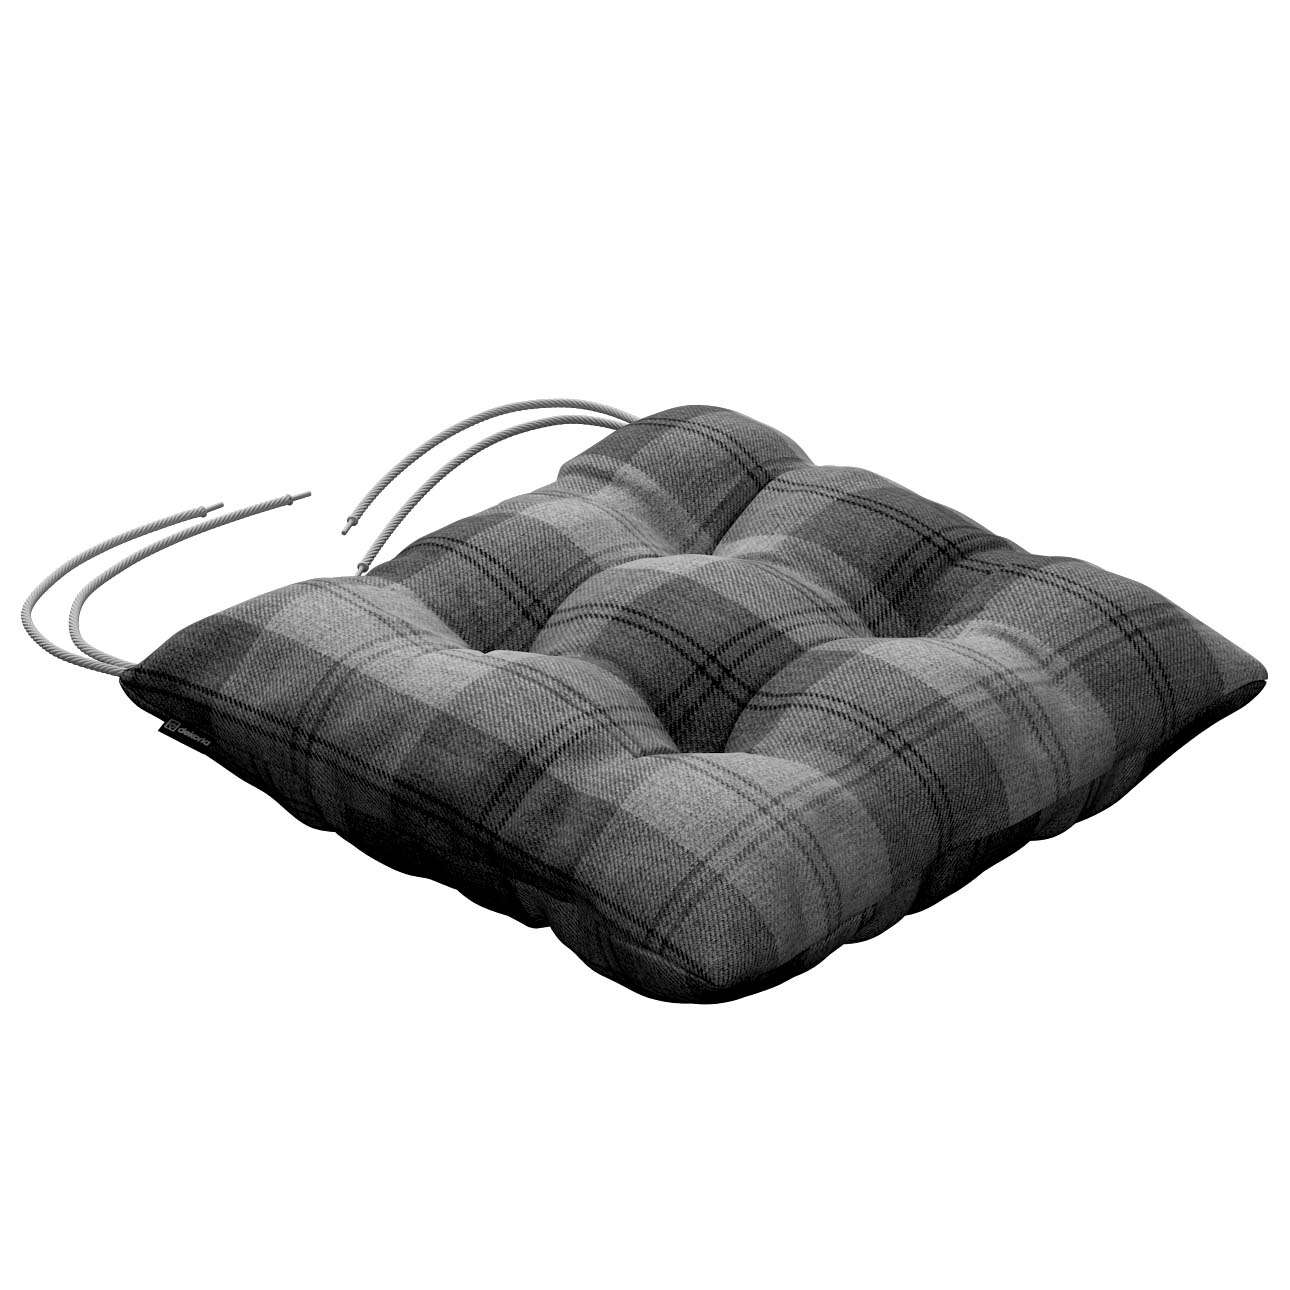 Jack seat pad with ties in collection Edinburgh, fabric: 115-75